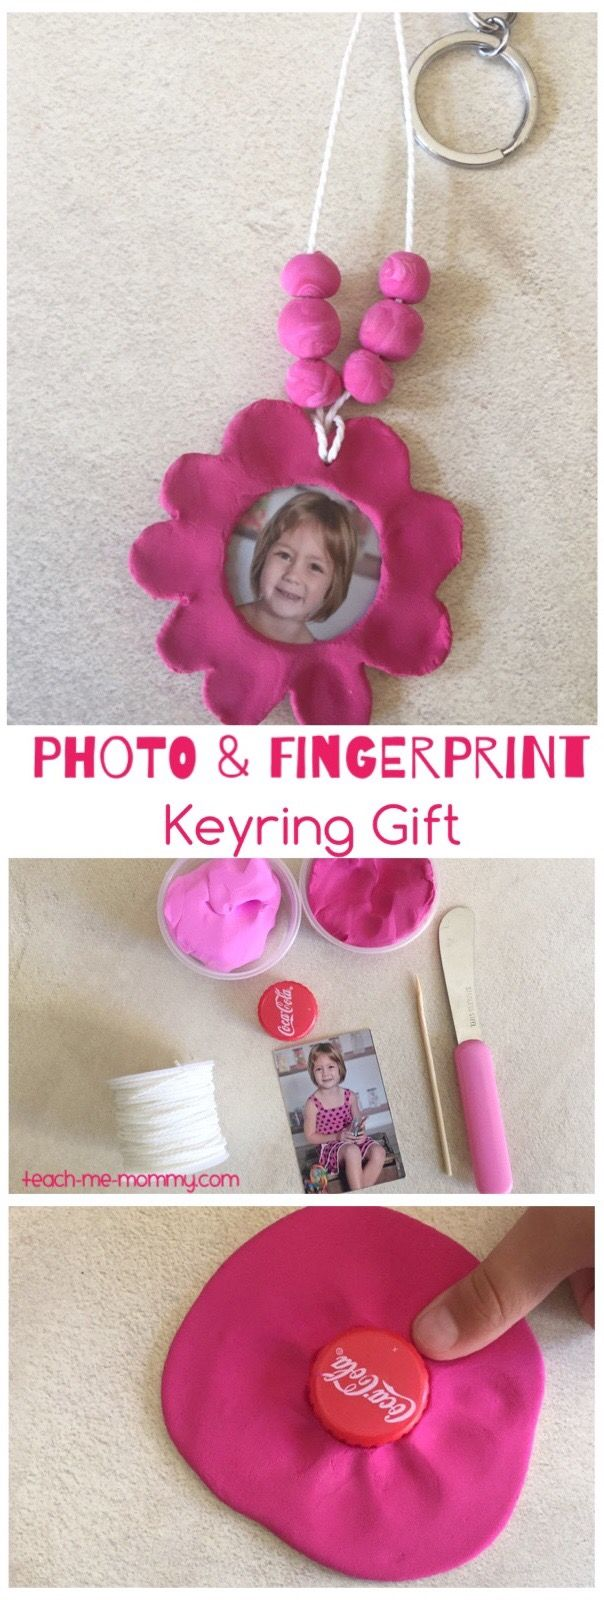 Photo & fingerprint keyring craft keepsake- perfect for Mother's Day